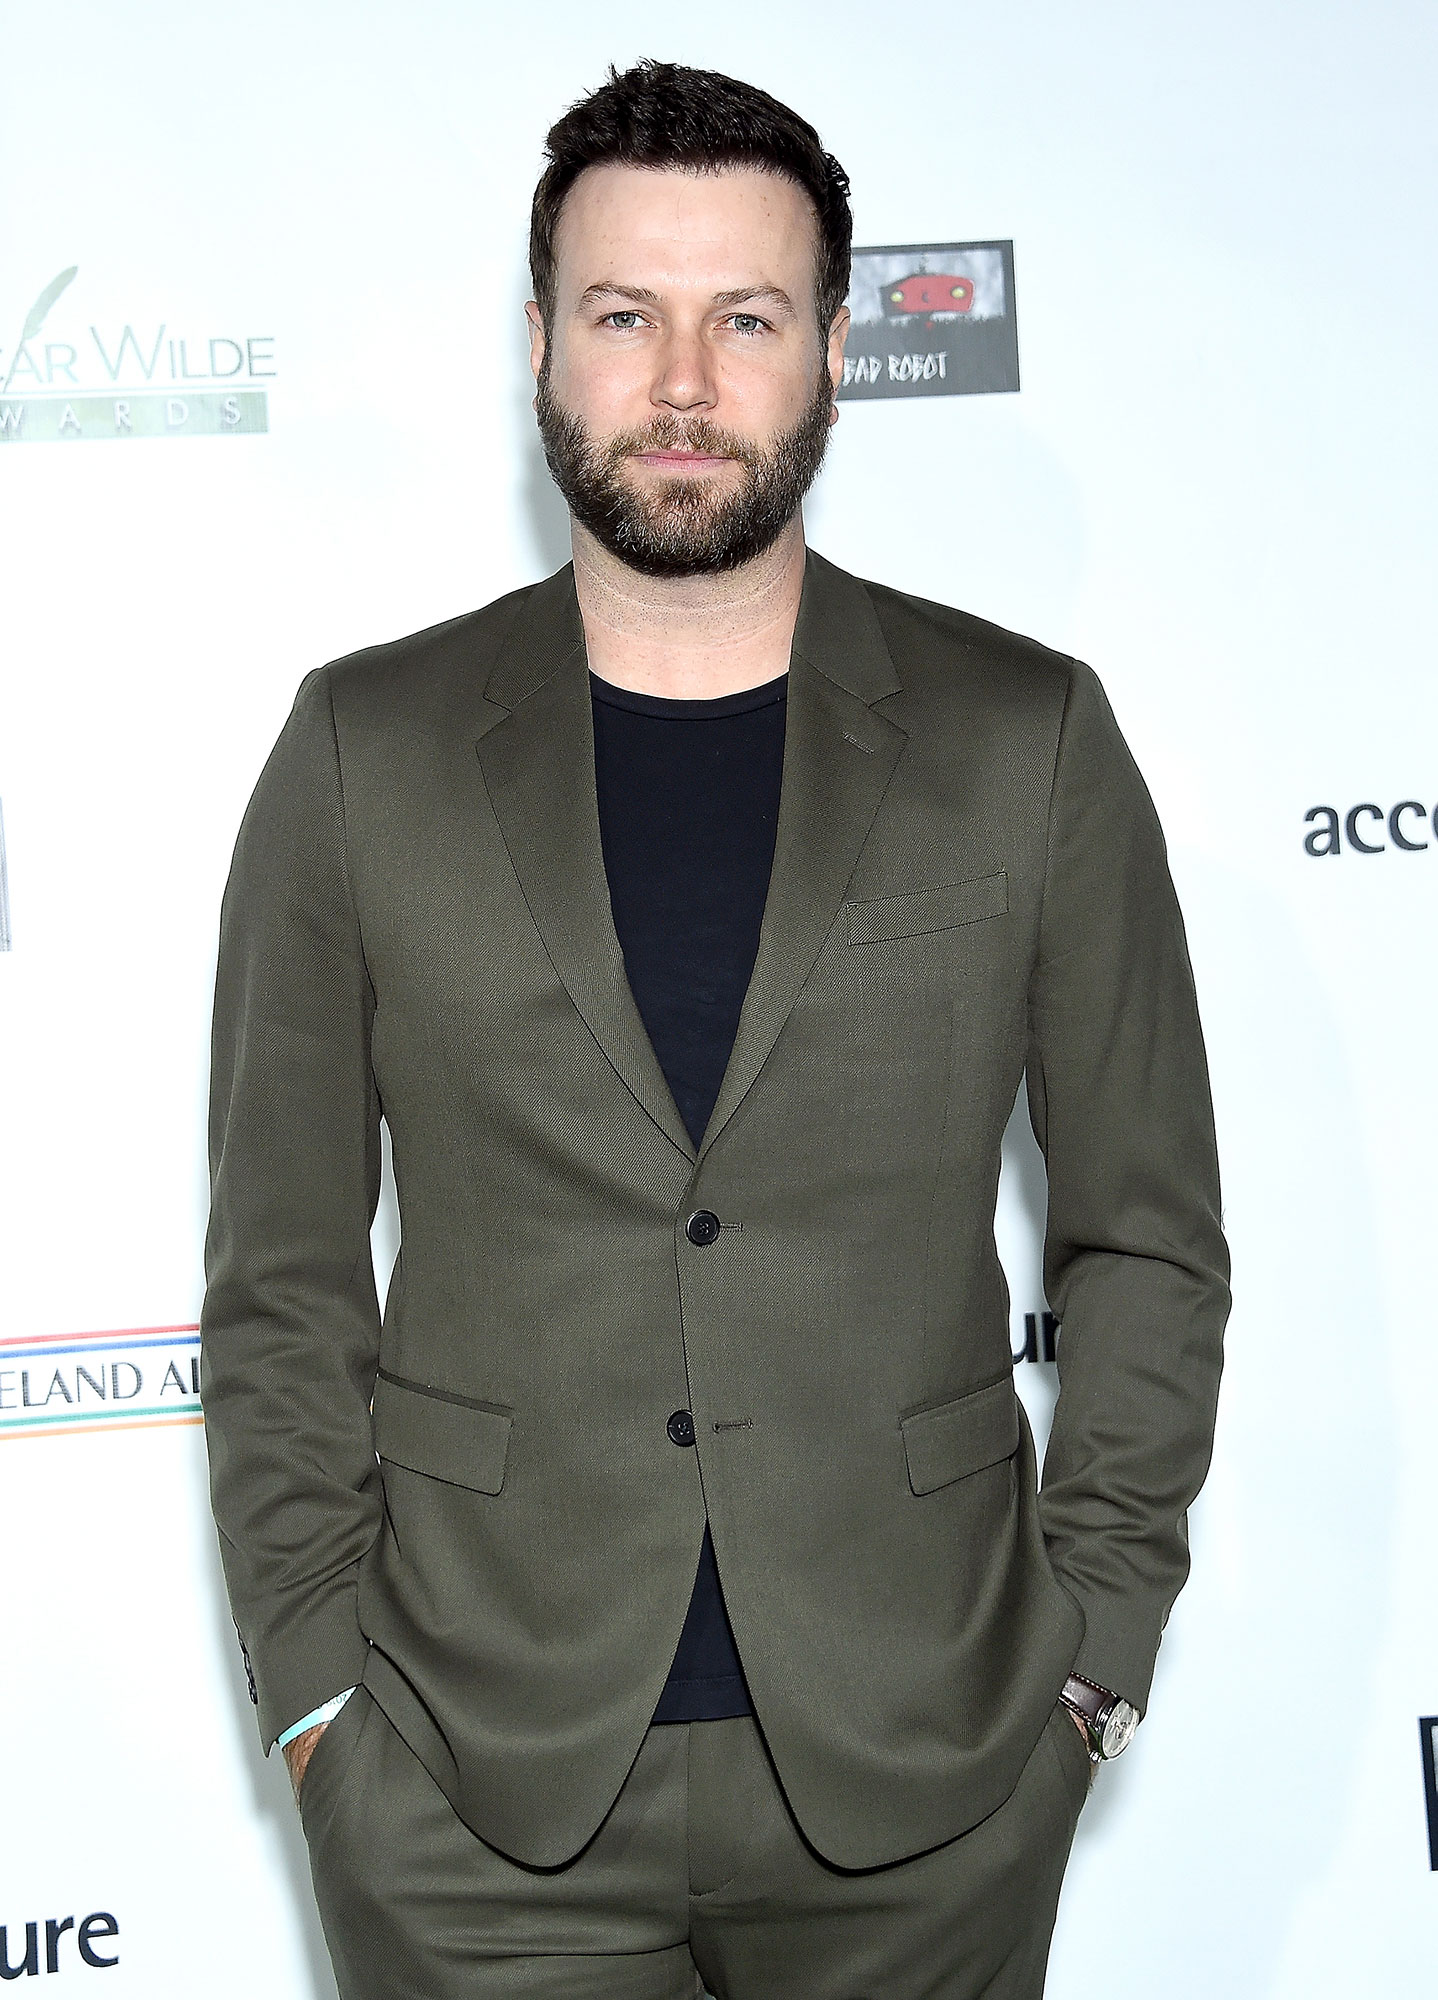 Taran Killam Reveals How and Where He and Wife Cobie Smulders 'Fell in Love' - Taran Killam attends the US-Ireland Alliance 14th Annual Oscar Wilde Awards at Bad Robot on February 21, 2019 in Santa Monica, California.